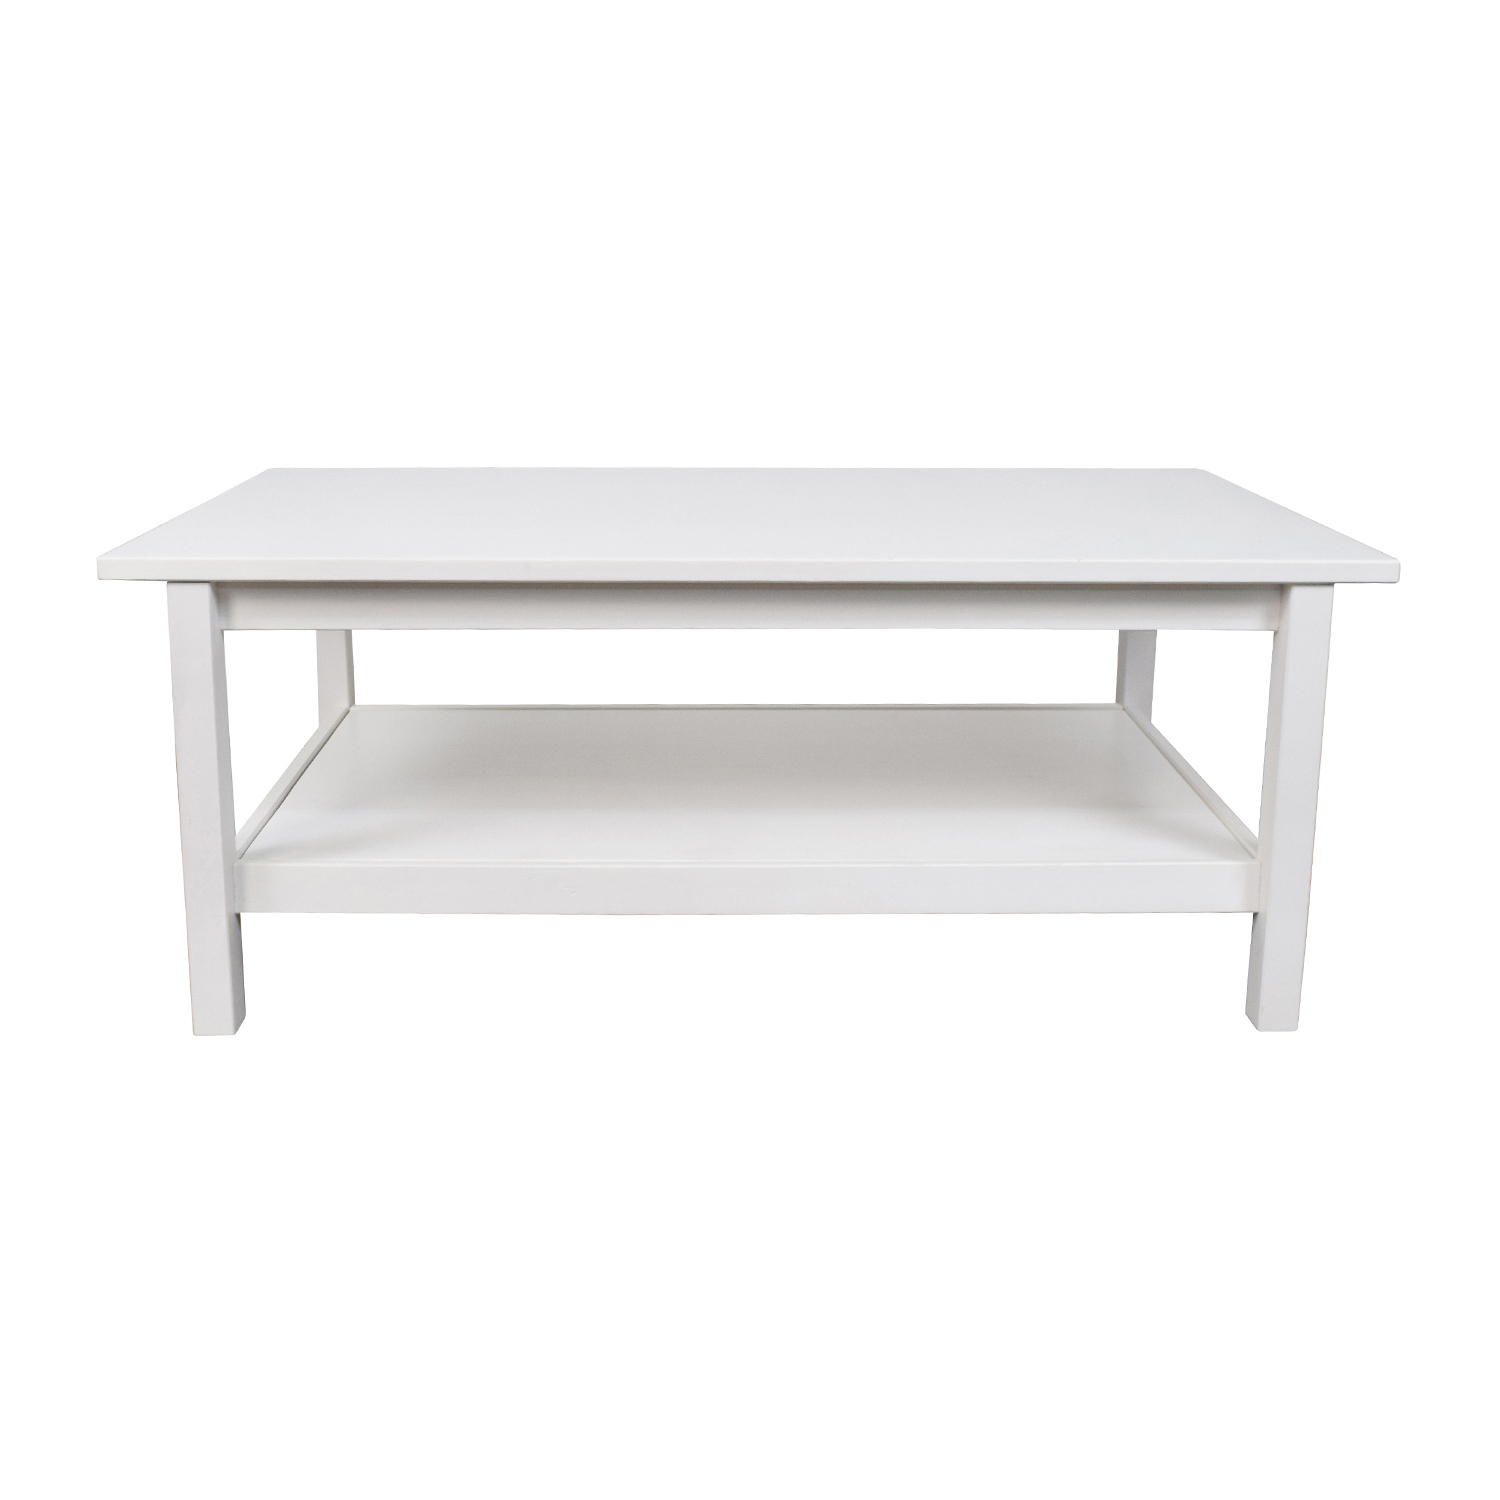 Hemnes Coffee Table Light Brown 118x75 Cm